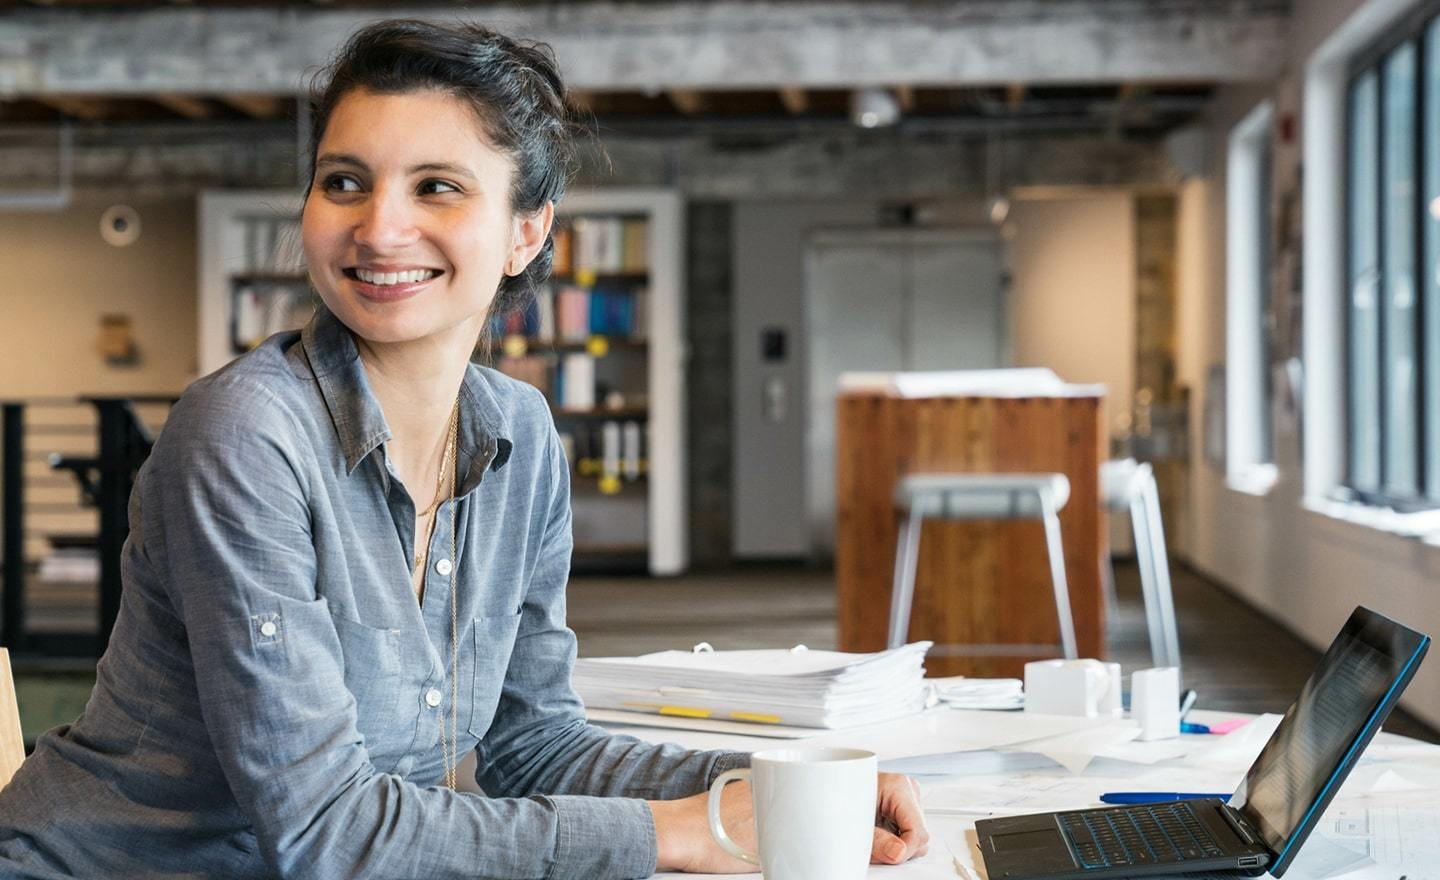 Smiling woman at desk with laptop